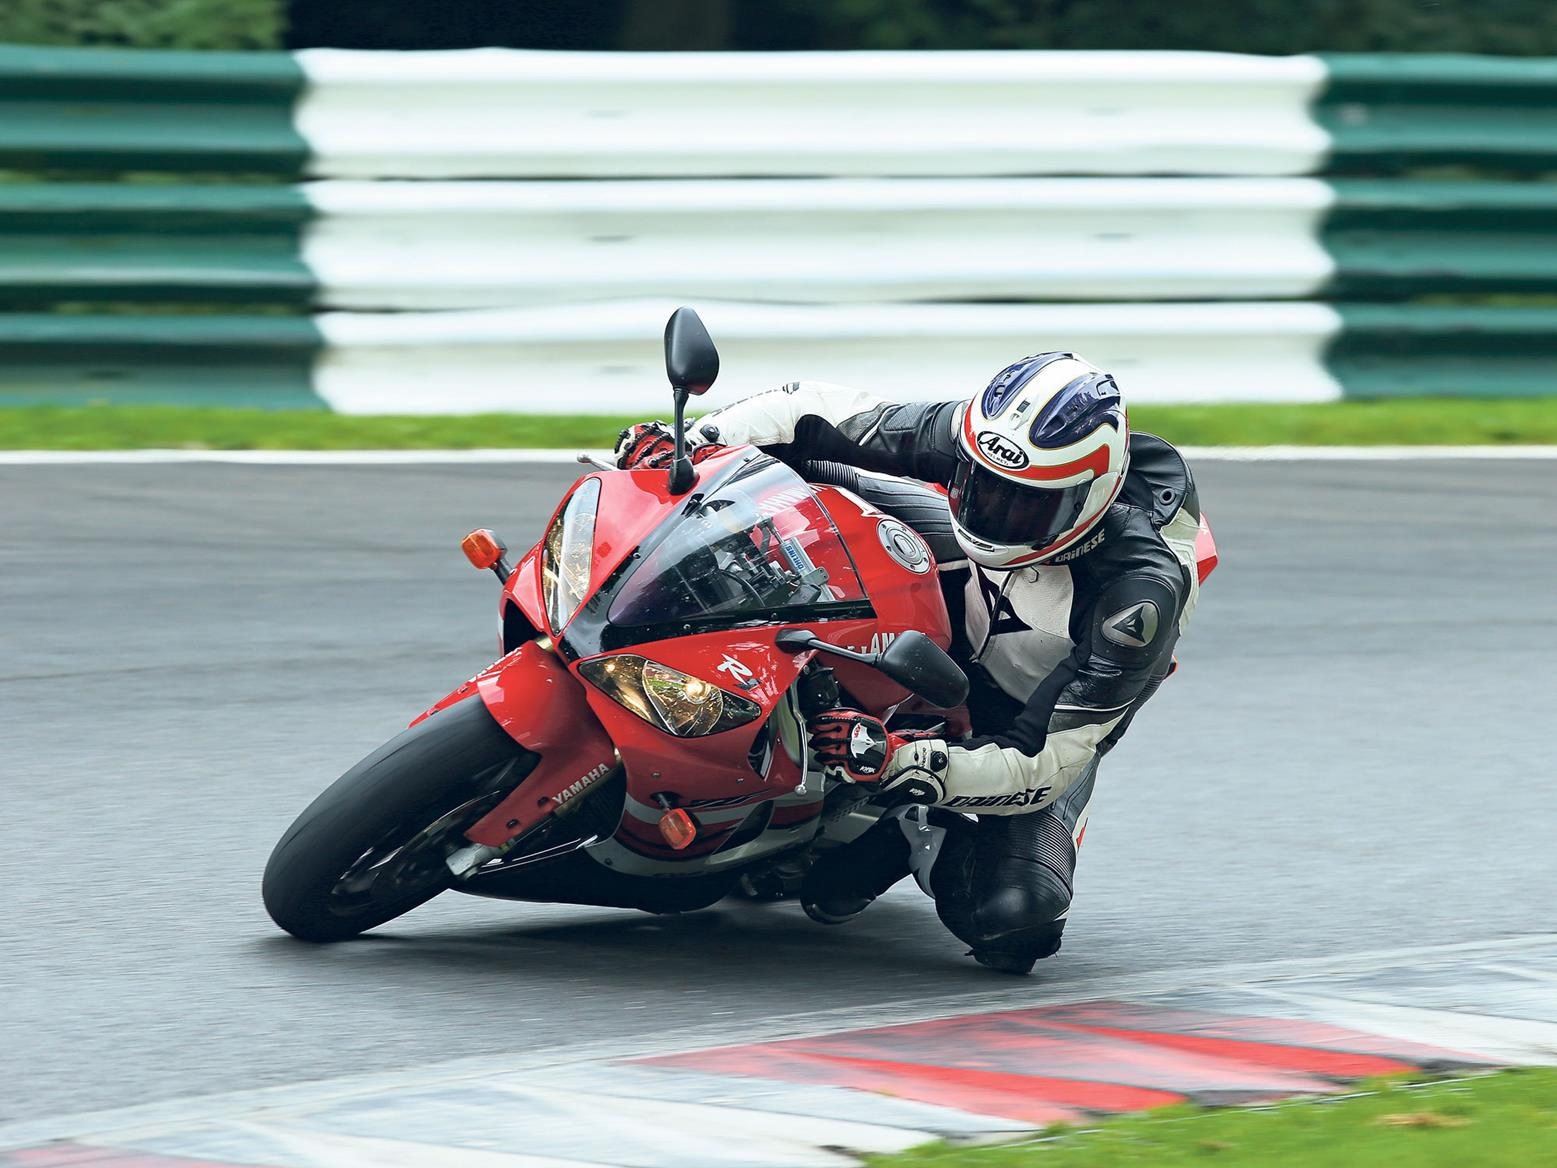 A trackday is a great situation in which to test your new suspension setup